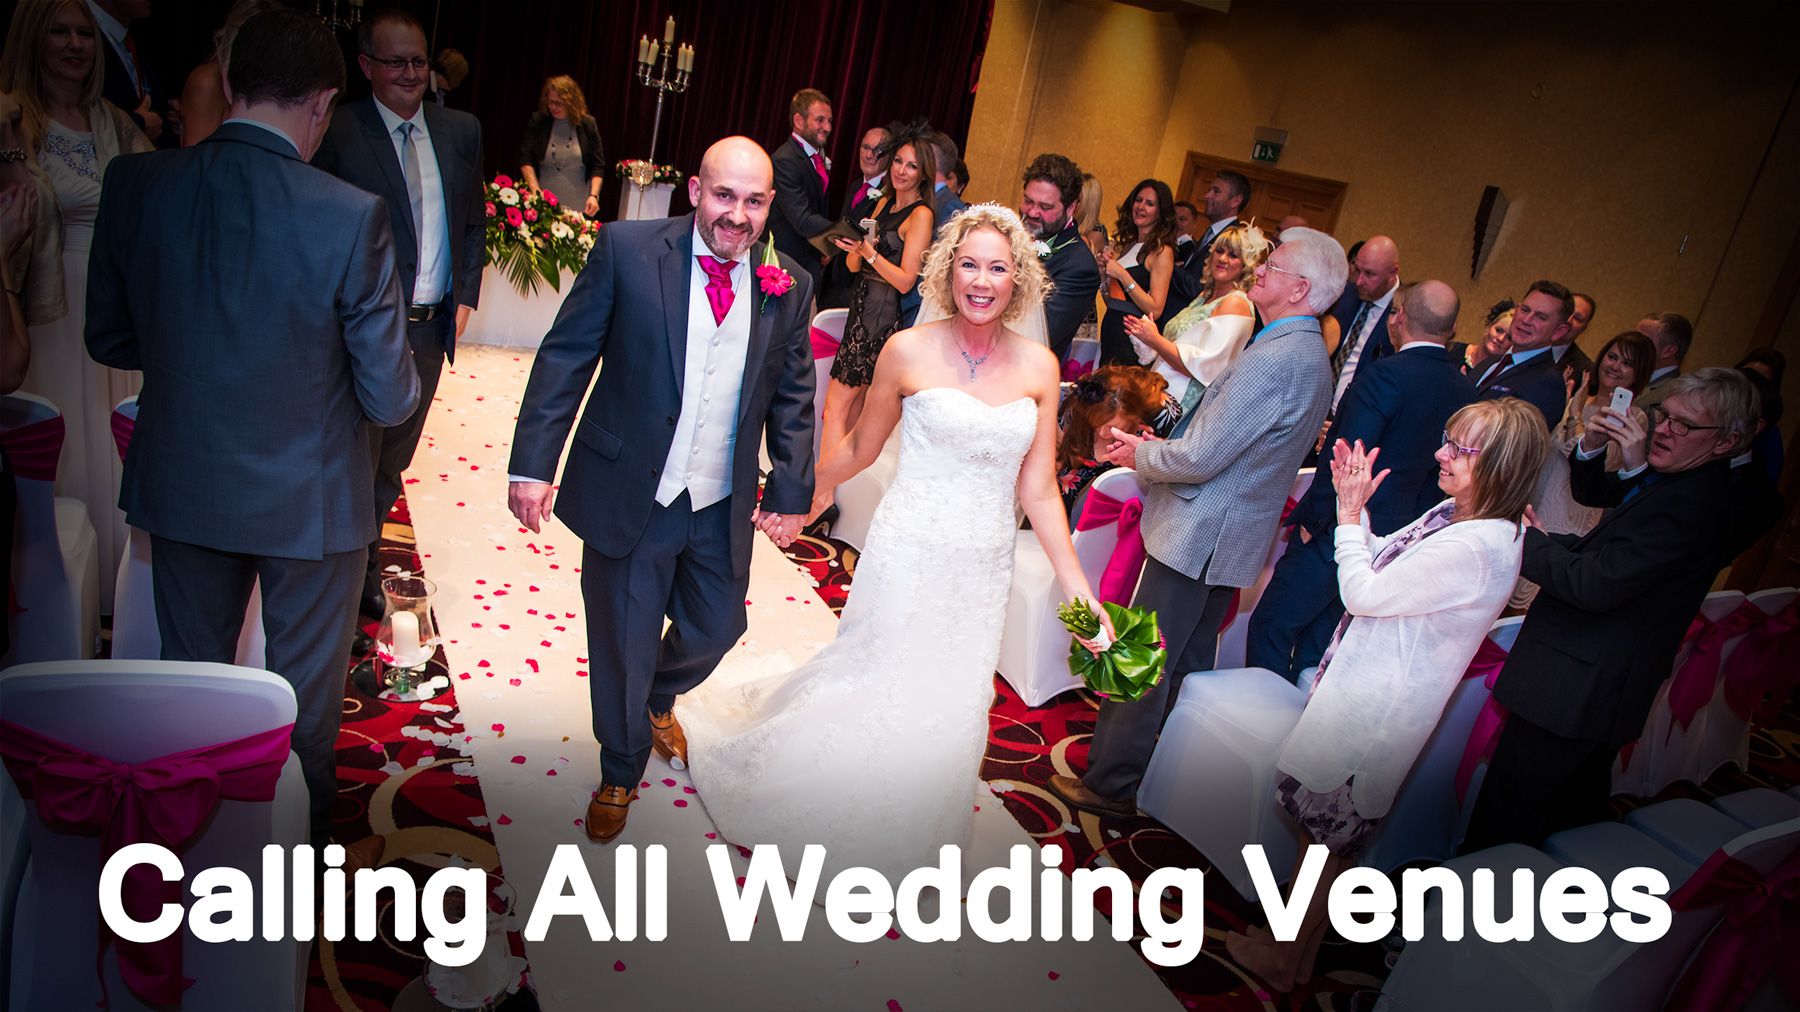 Wedding Venues In Go | Calling All Wedding Venues Go Virtual 360 Virtual Reality Tours